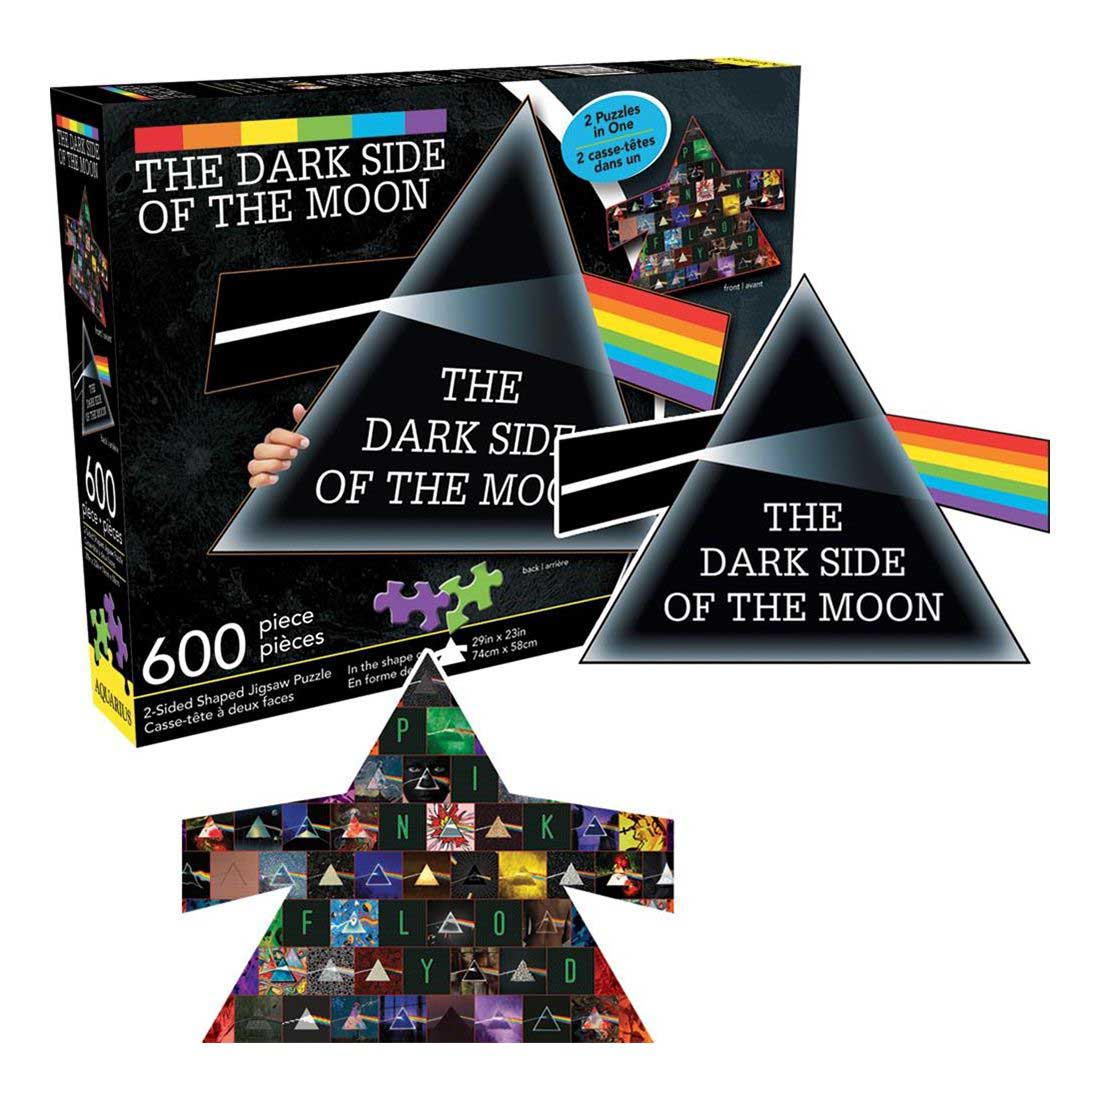 Pink Floyd - Dark Side of the Moon Movies / Books / TV Jigsaw Puzzle